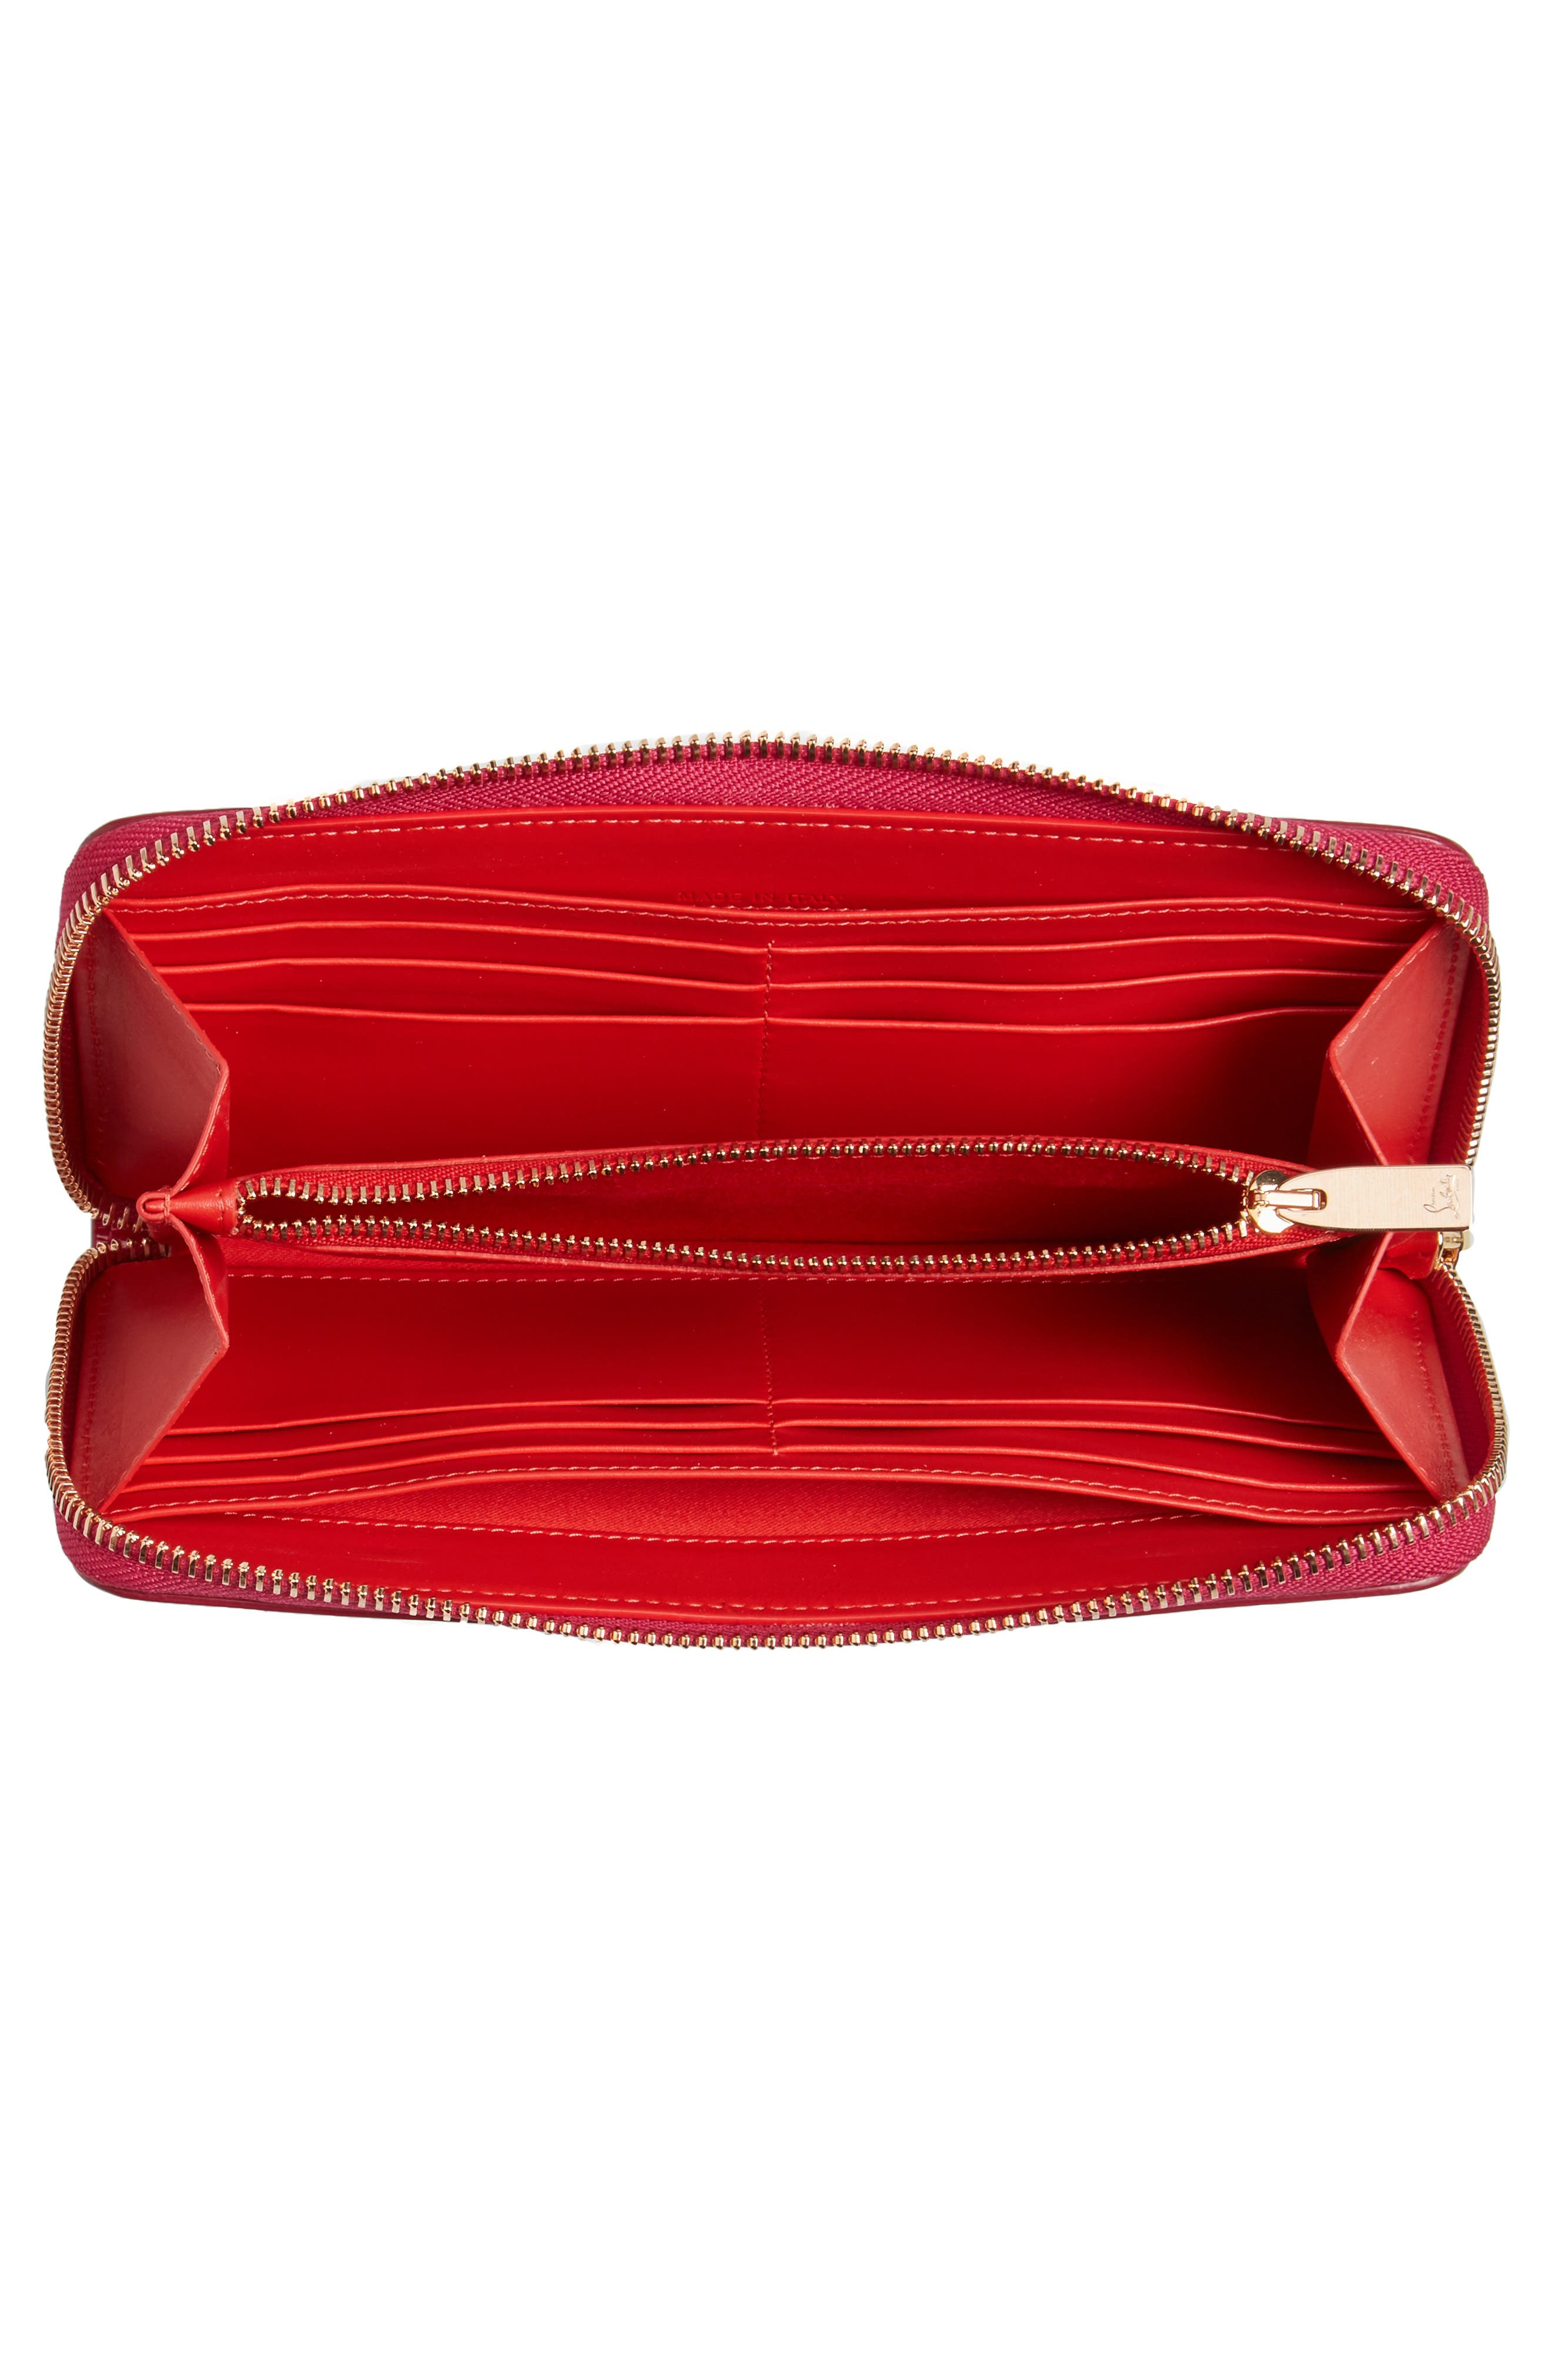 Panettone Spiked Patent Leather Wallet,                             Alternate thumbnail 4, color,                             693